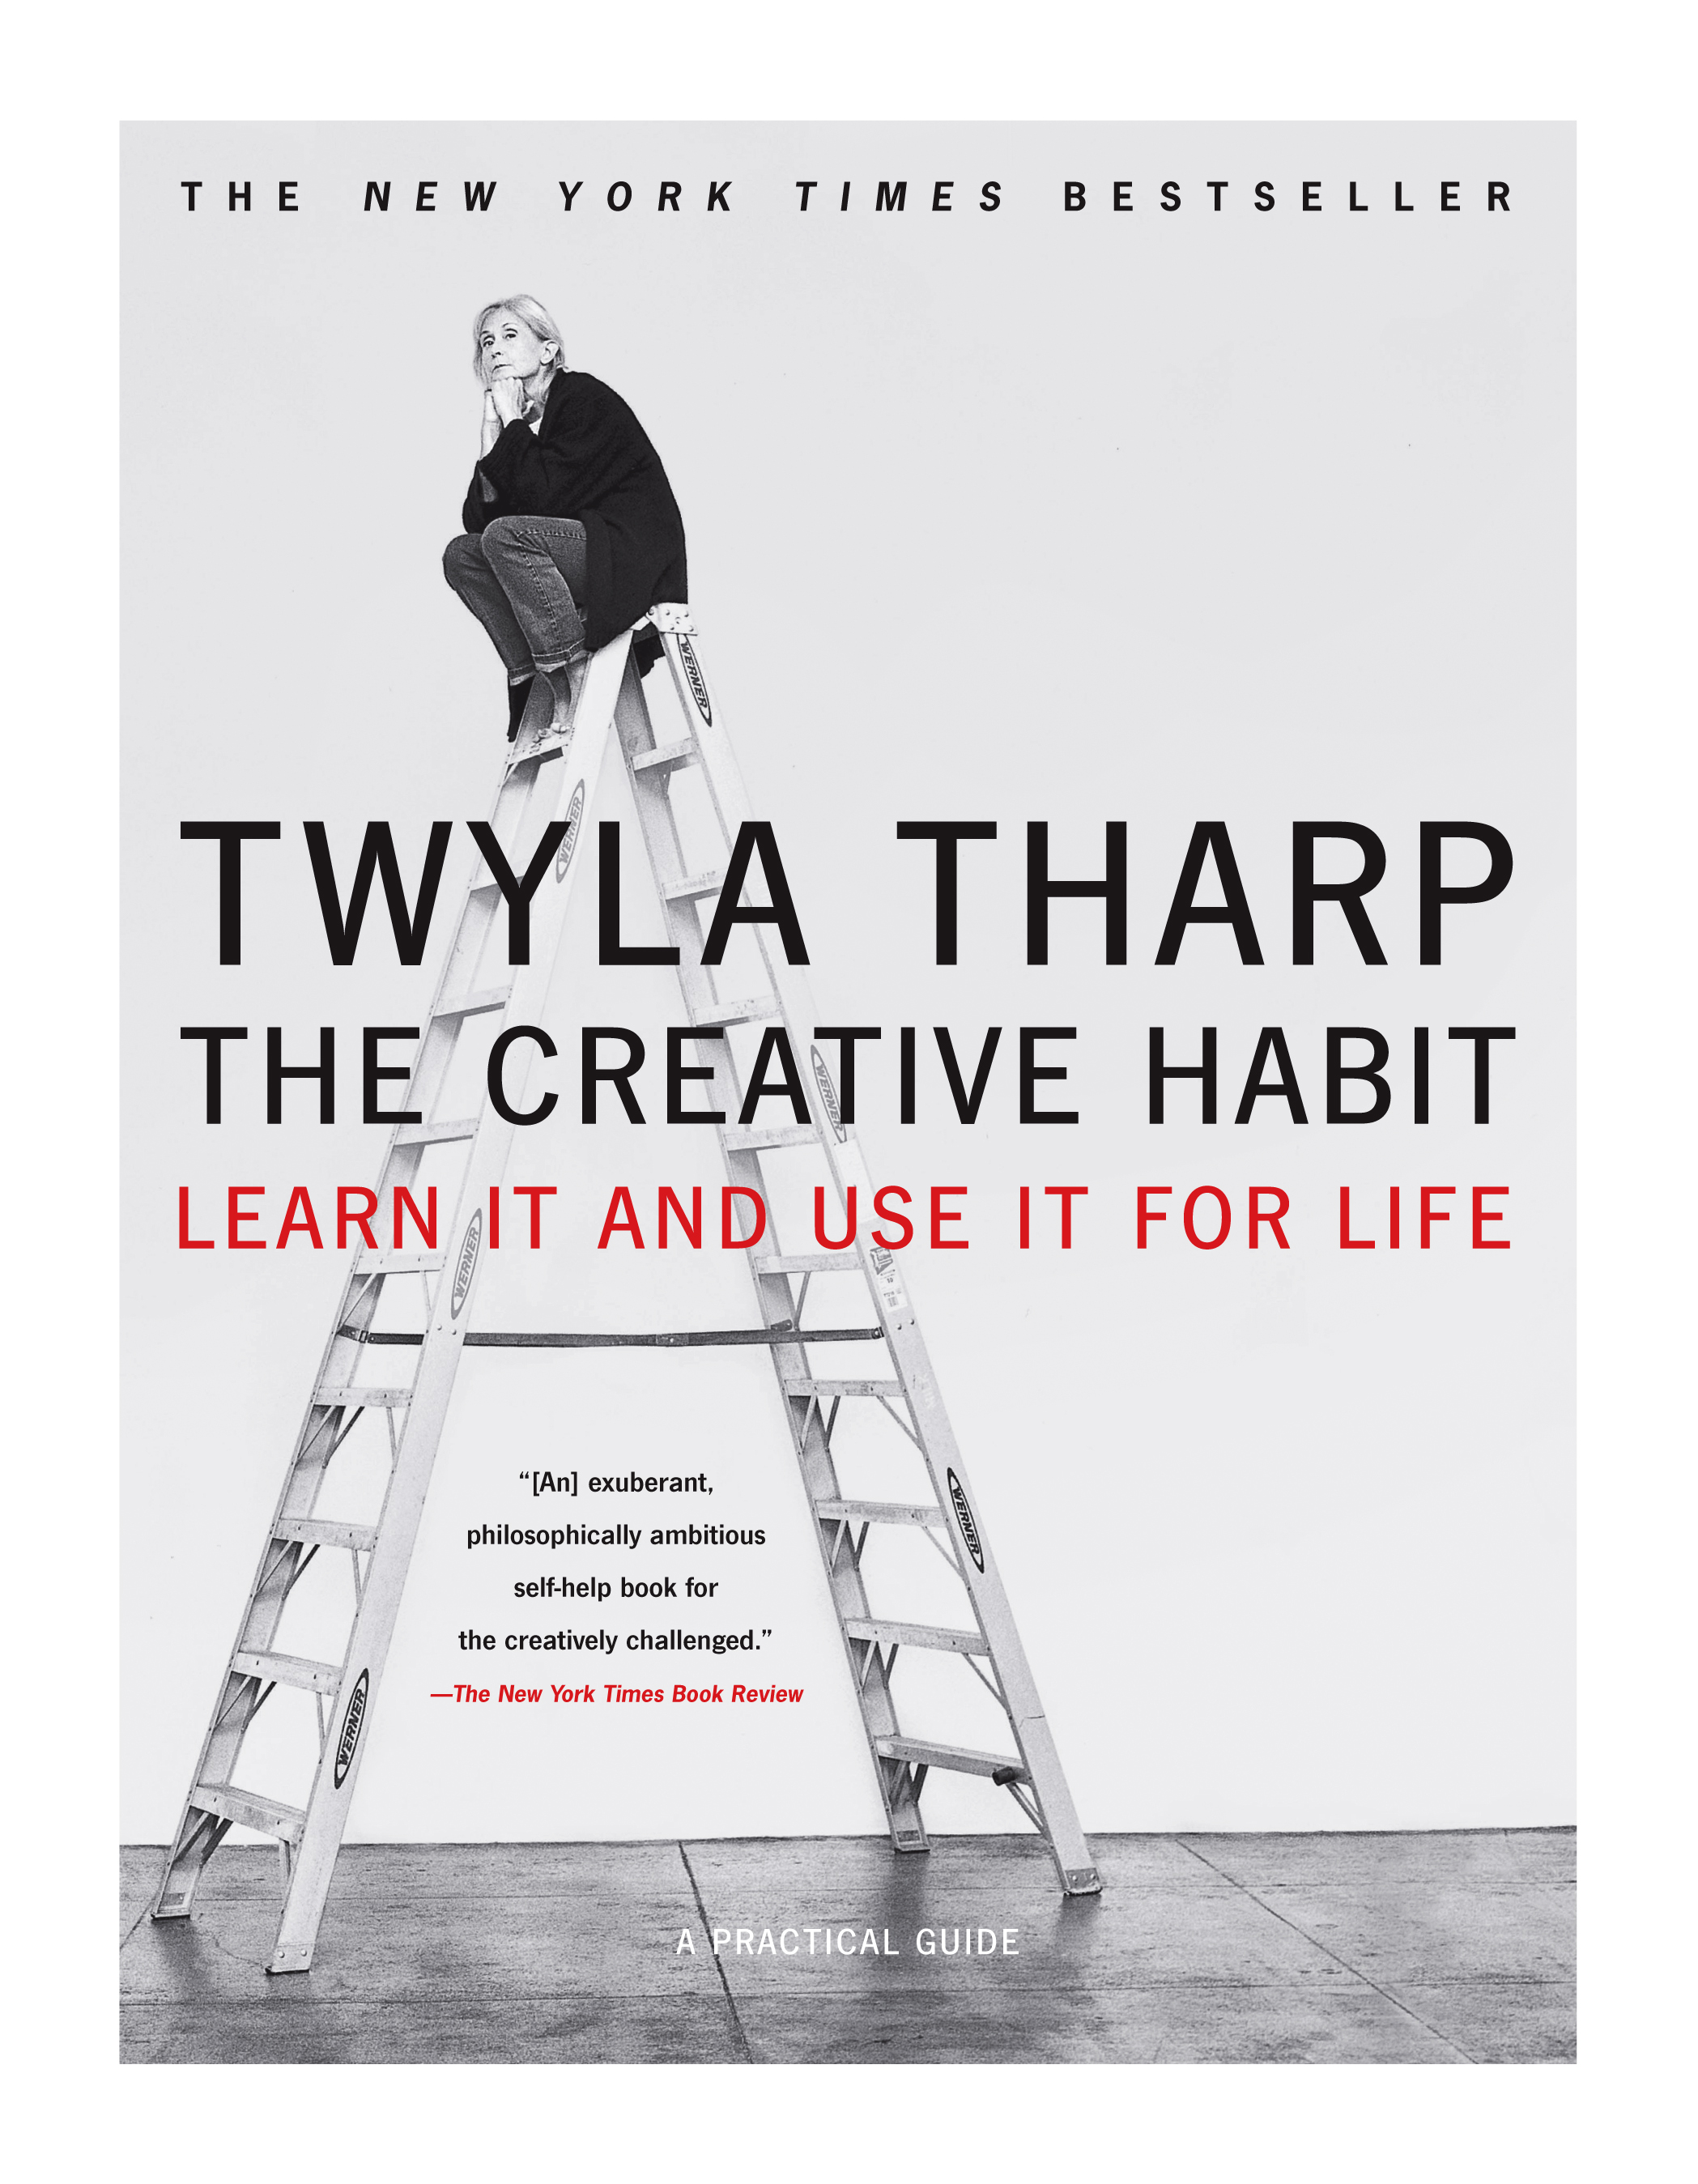 The cover of the book The Creative Habit